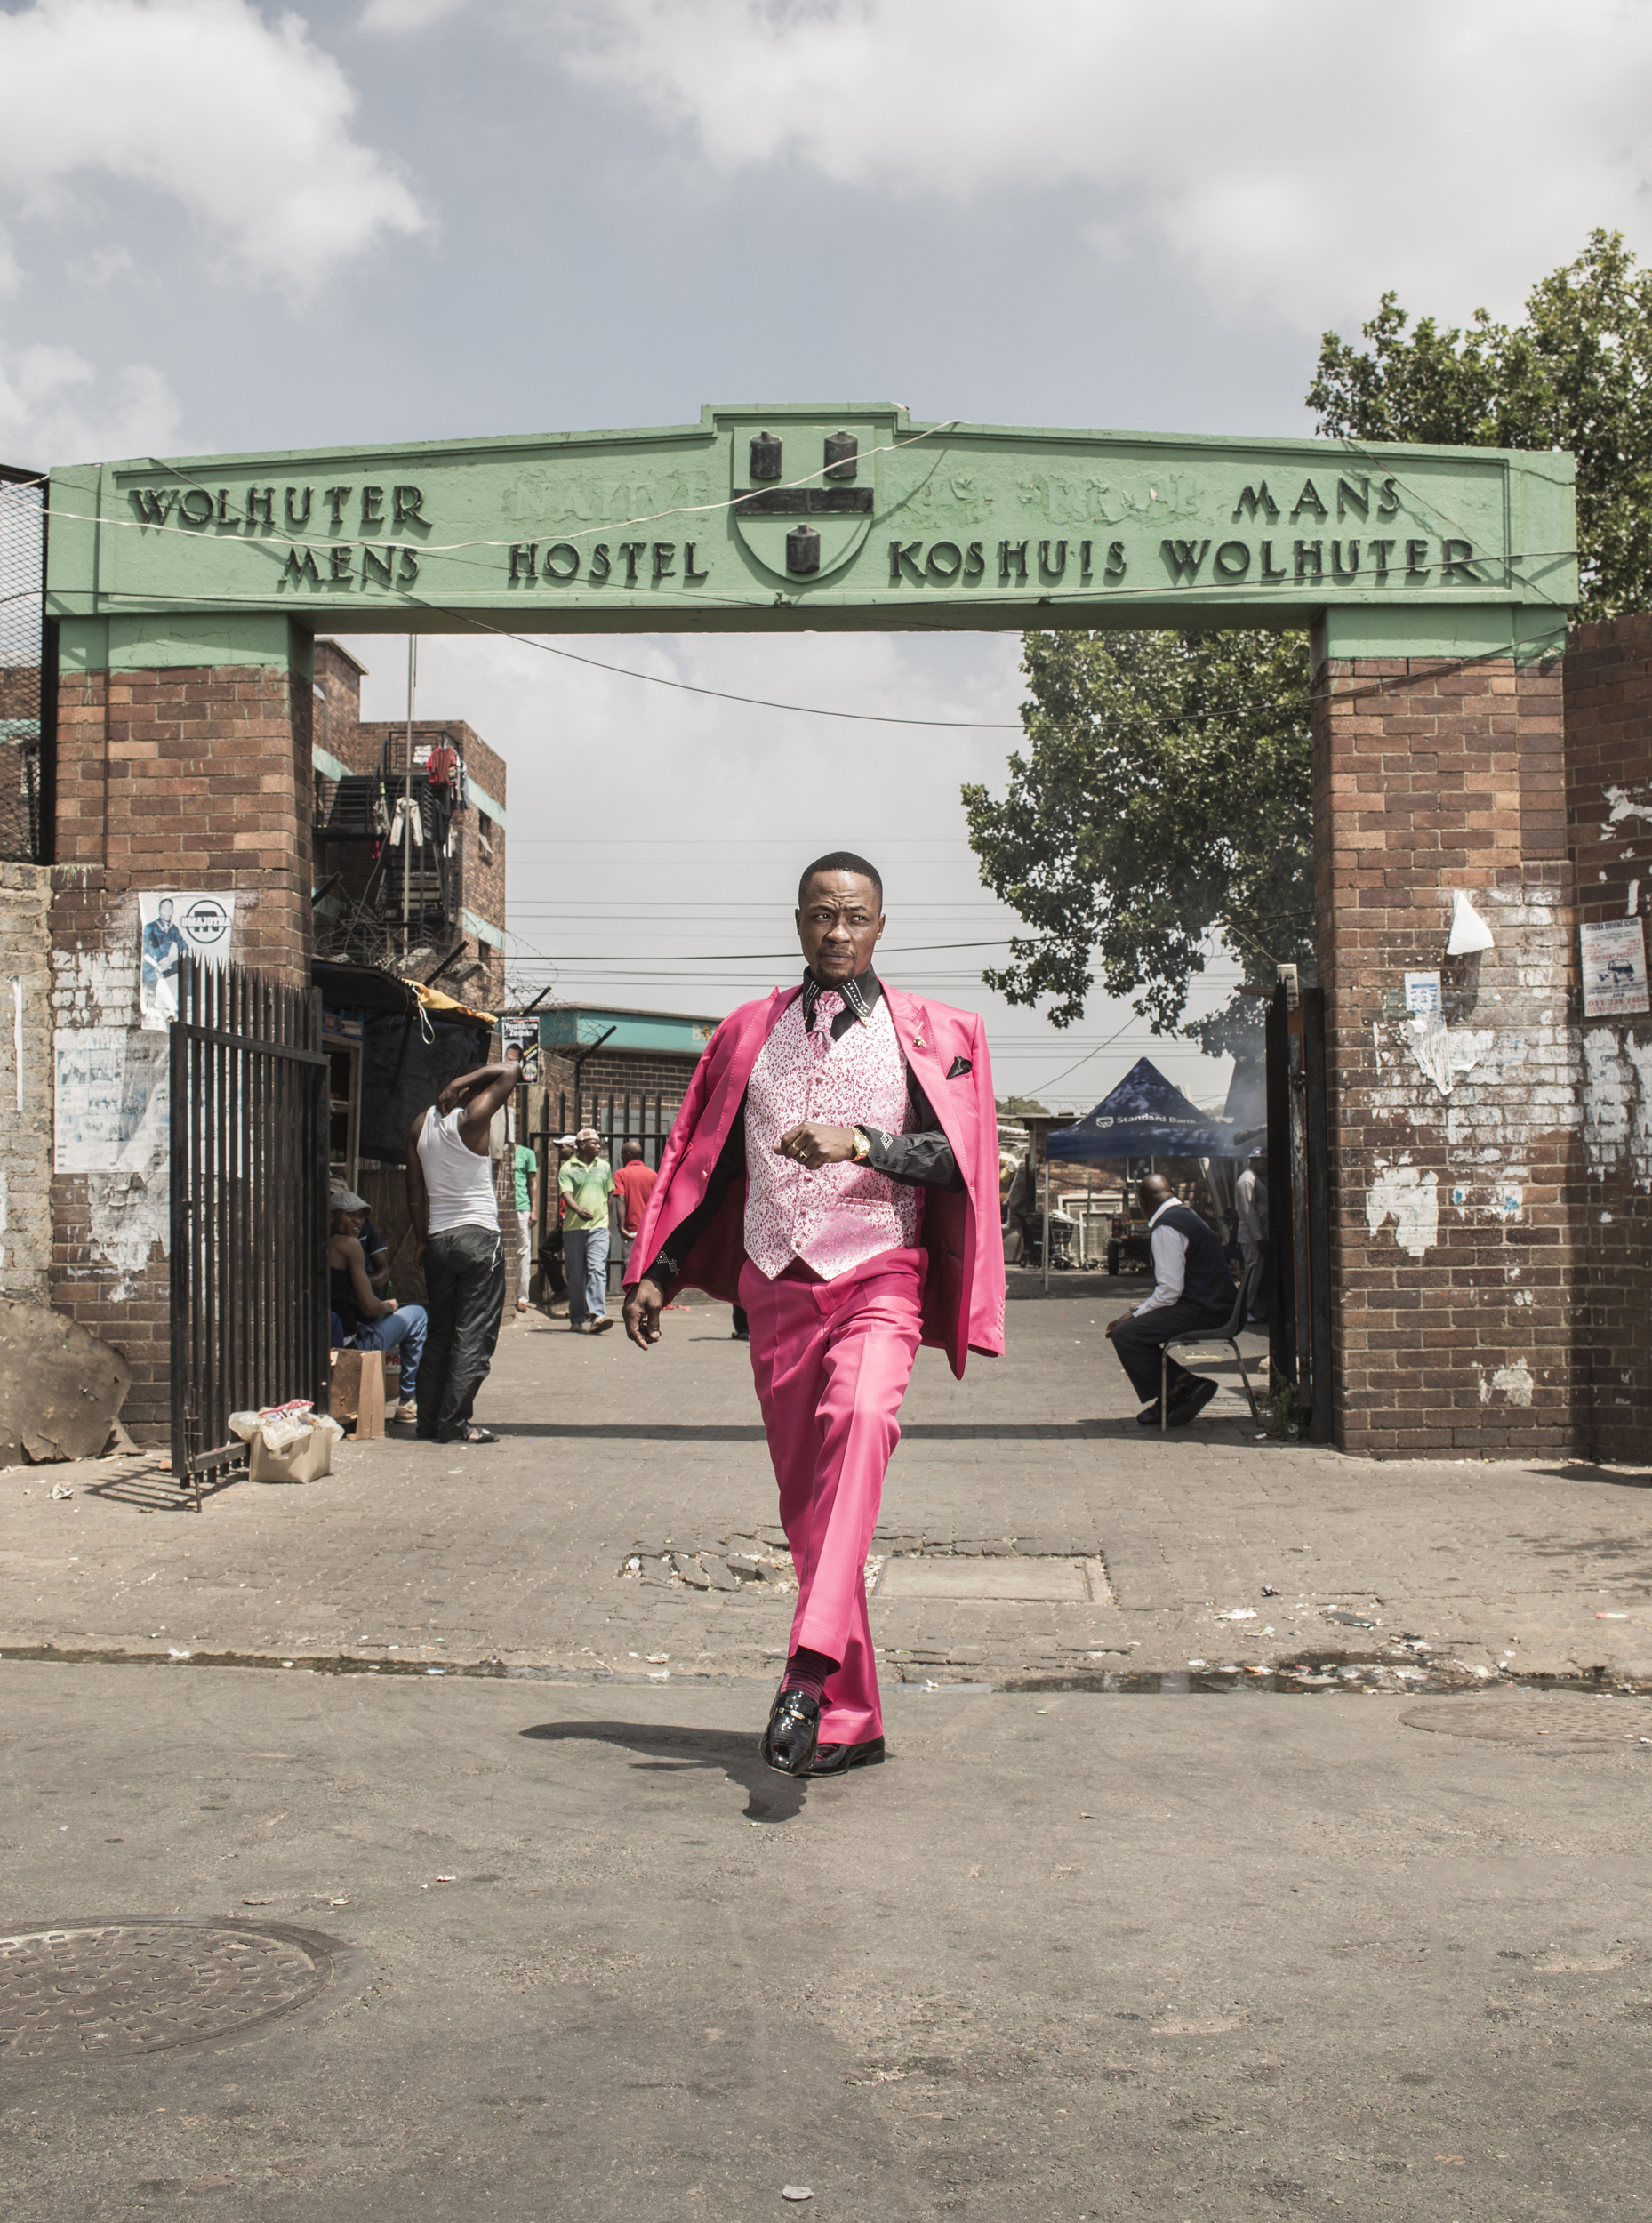 perspectives: My experience as a swenka - Siphosethu Siyabonga Ngobese, 36, explains why swenka is a subculture worth preserving.